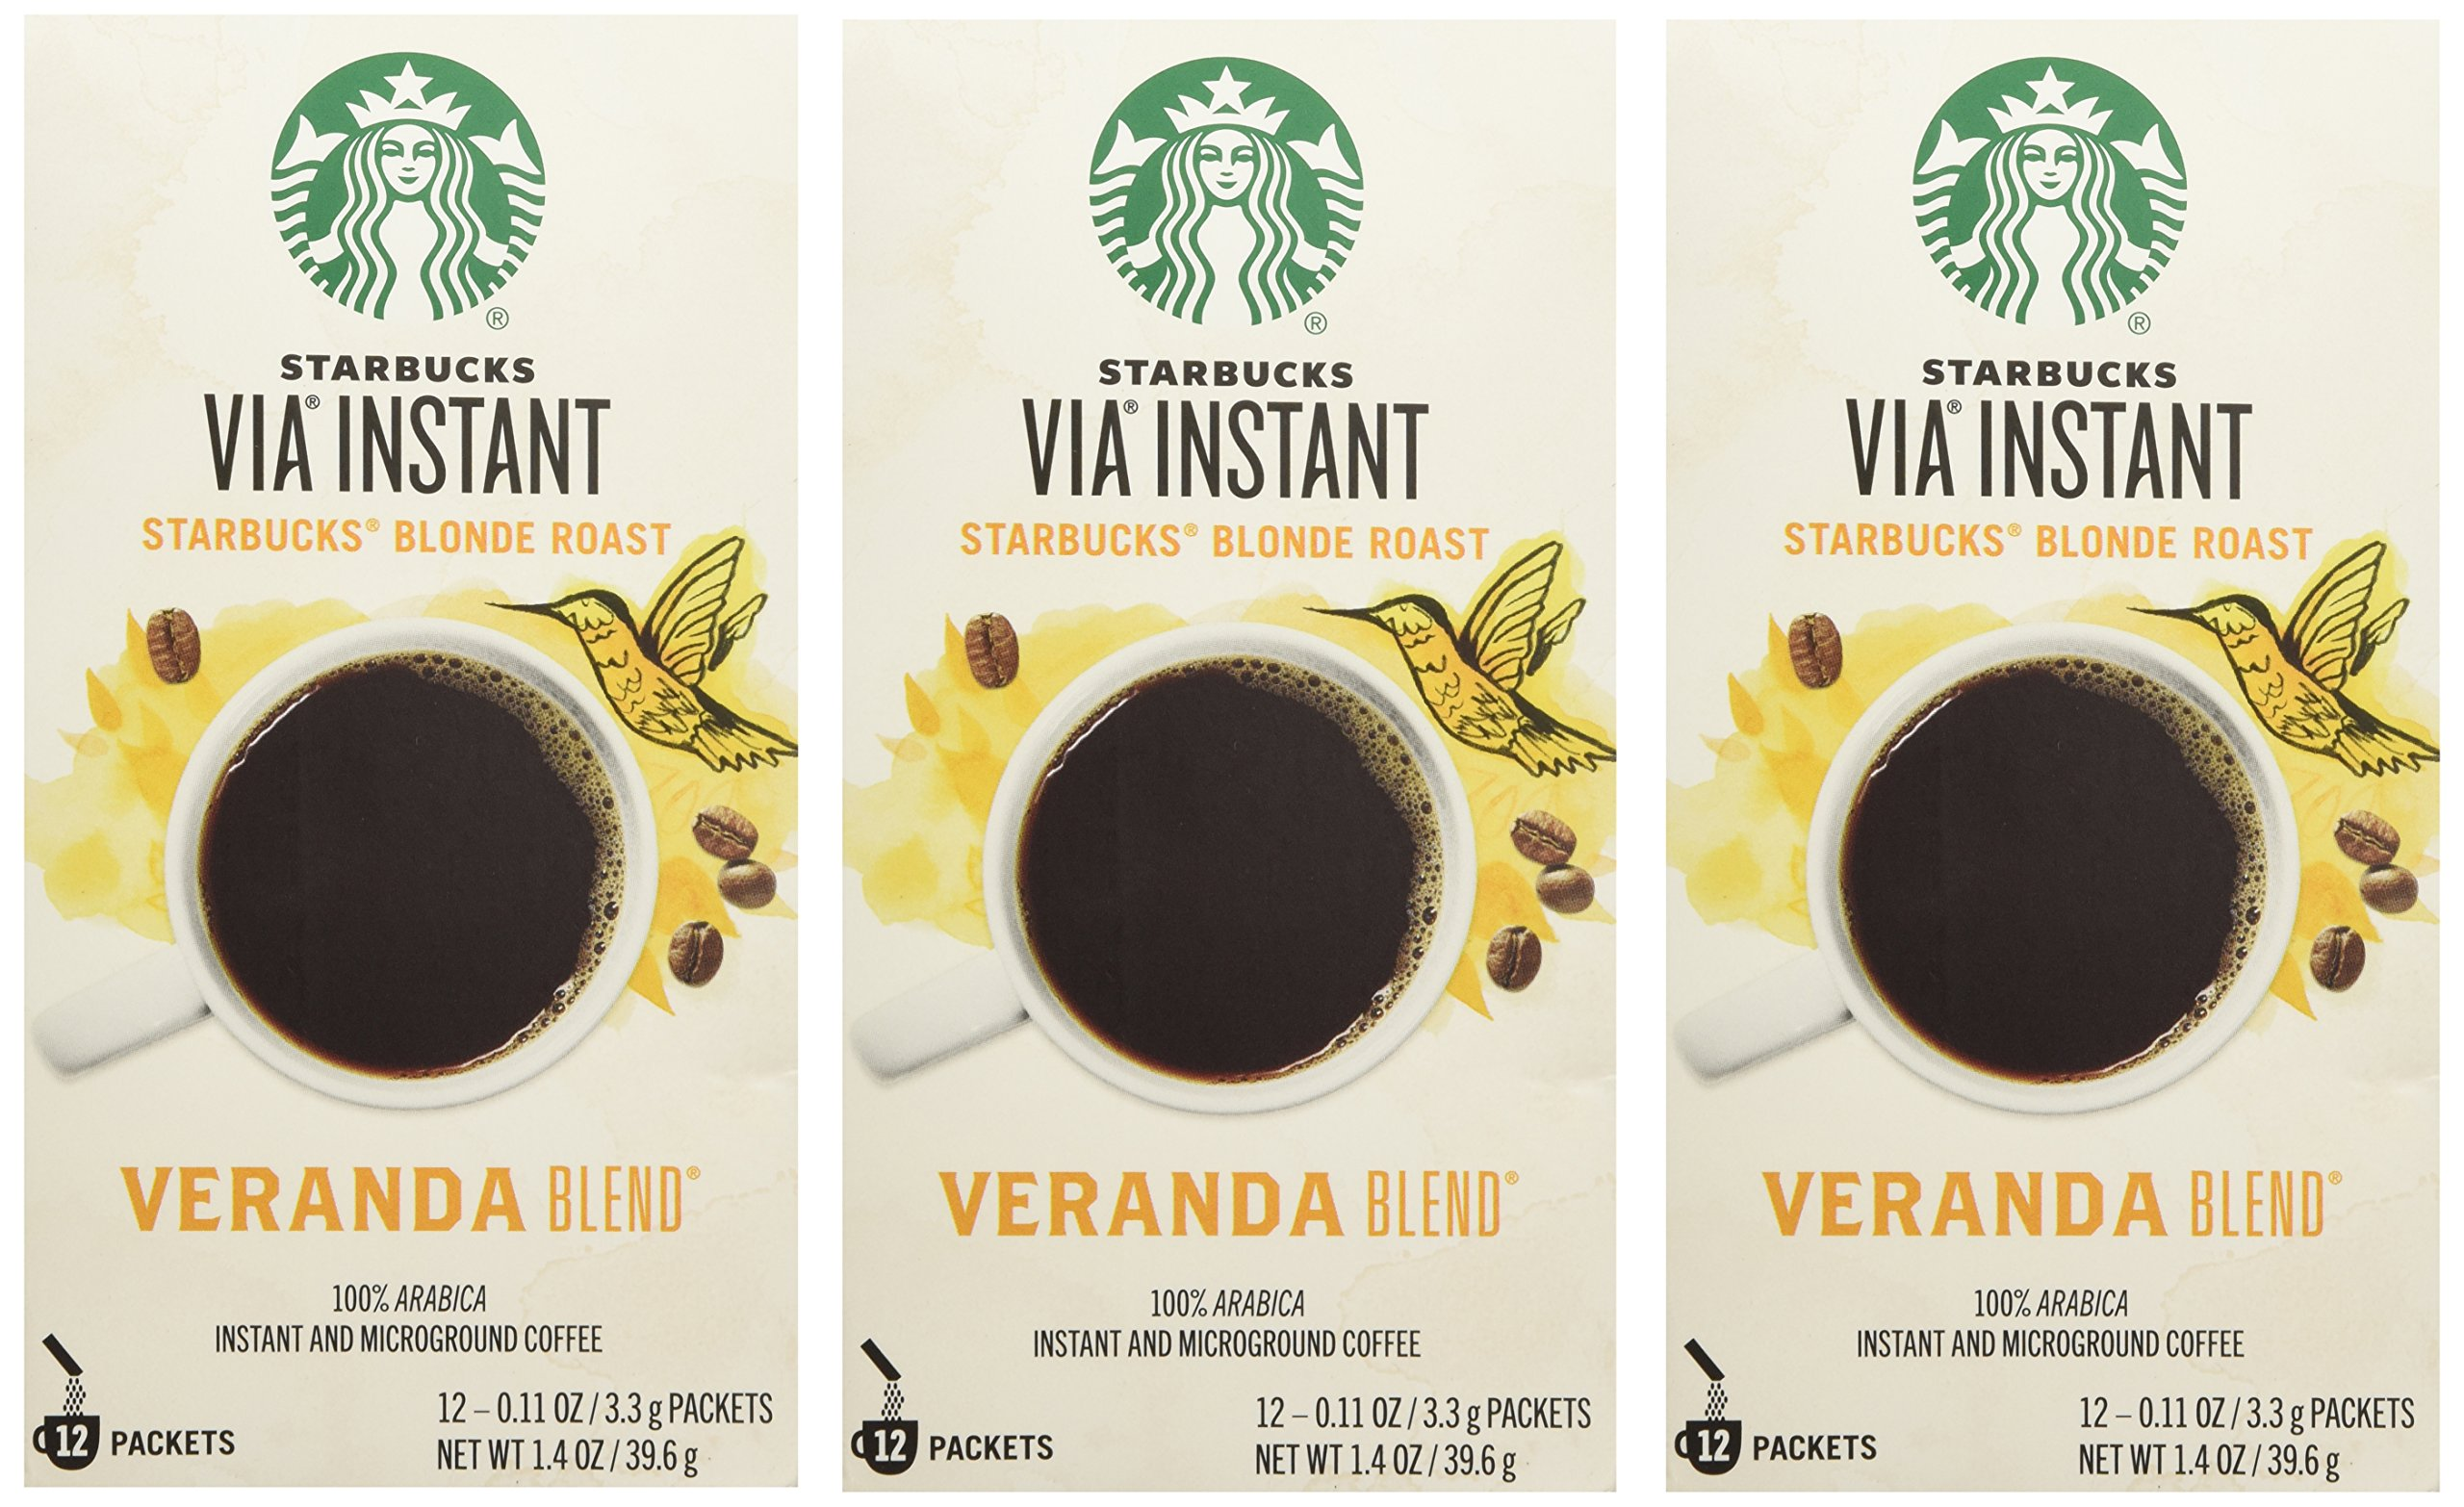 Starbucks VIA® Ready Brew Coffee Veranda Blend Blonde Roast (3 Pack/Boxes) 36 Packets Total by Starbucks